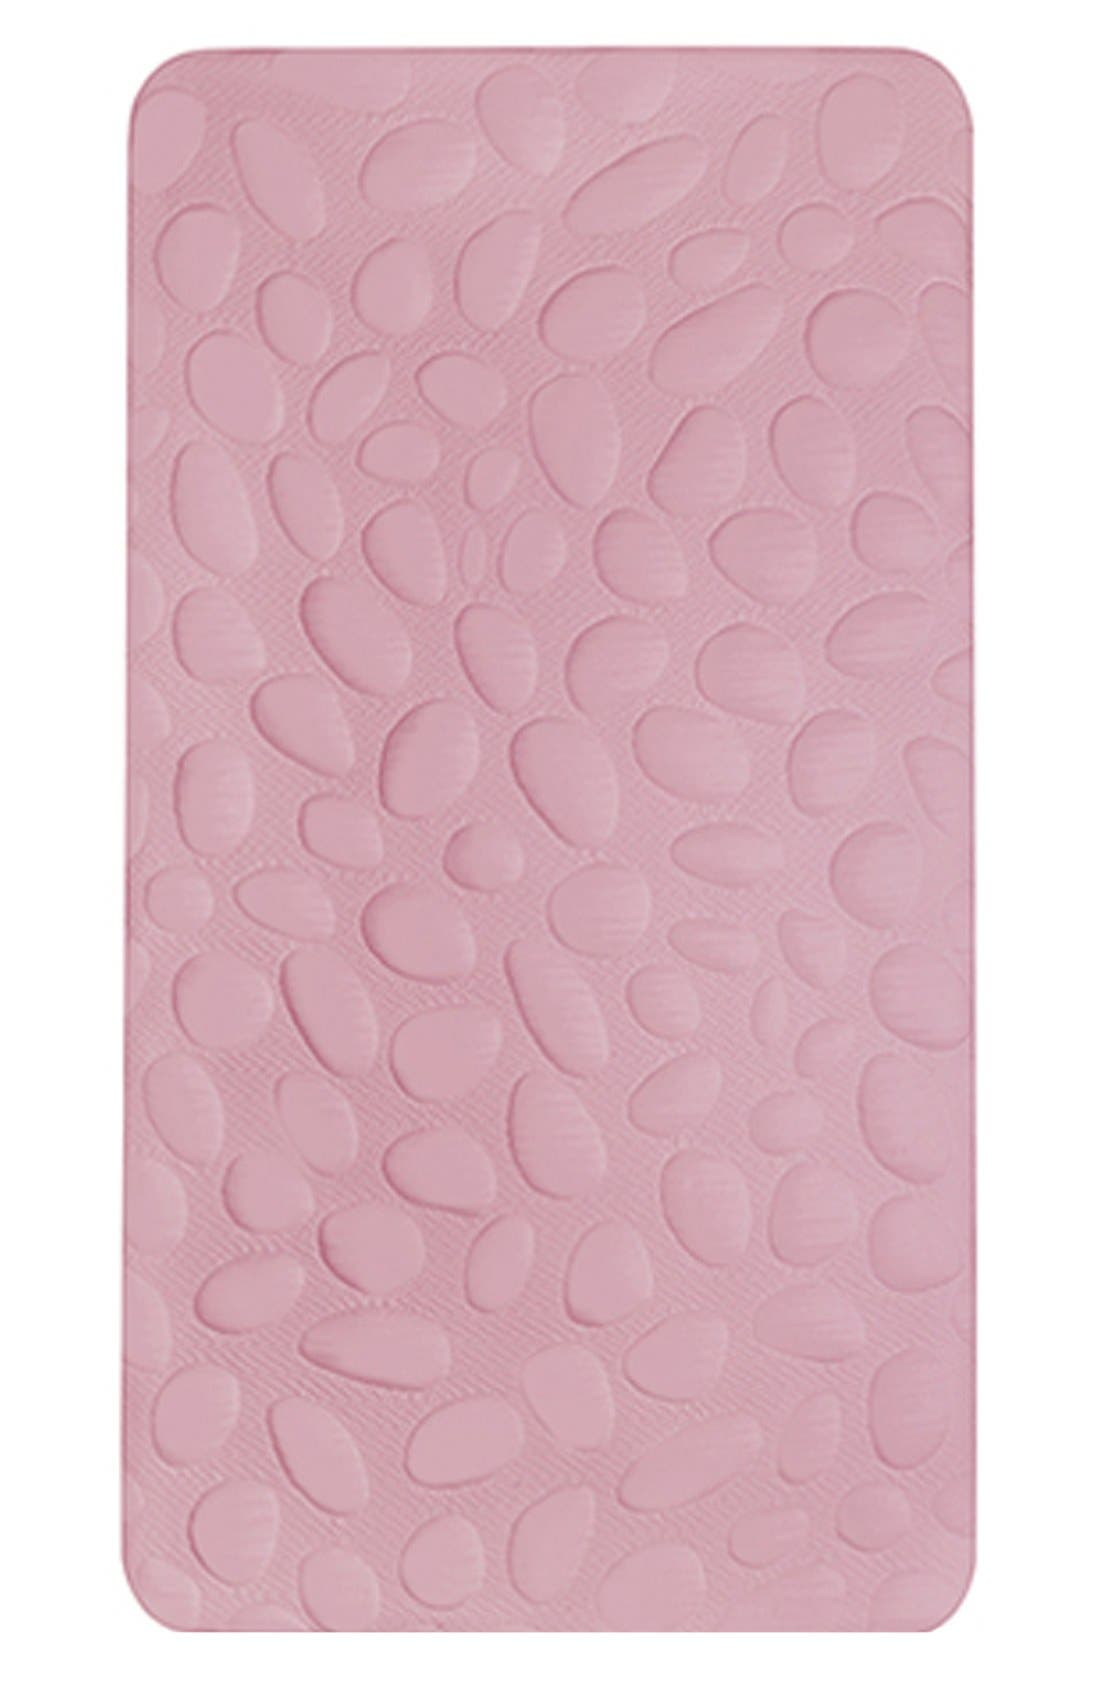 NOOK SLEEP SYSTEMS 'Pebble Air' Crib Mattress, Main, color, 650